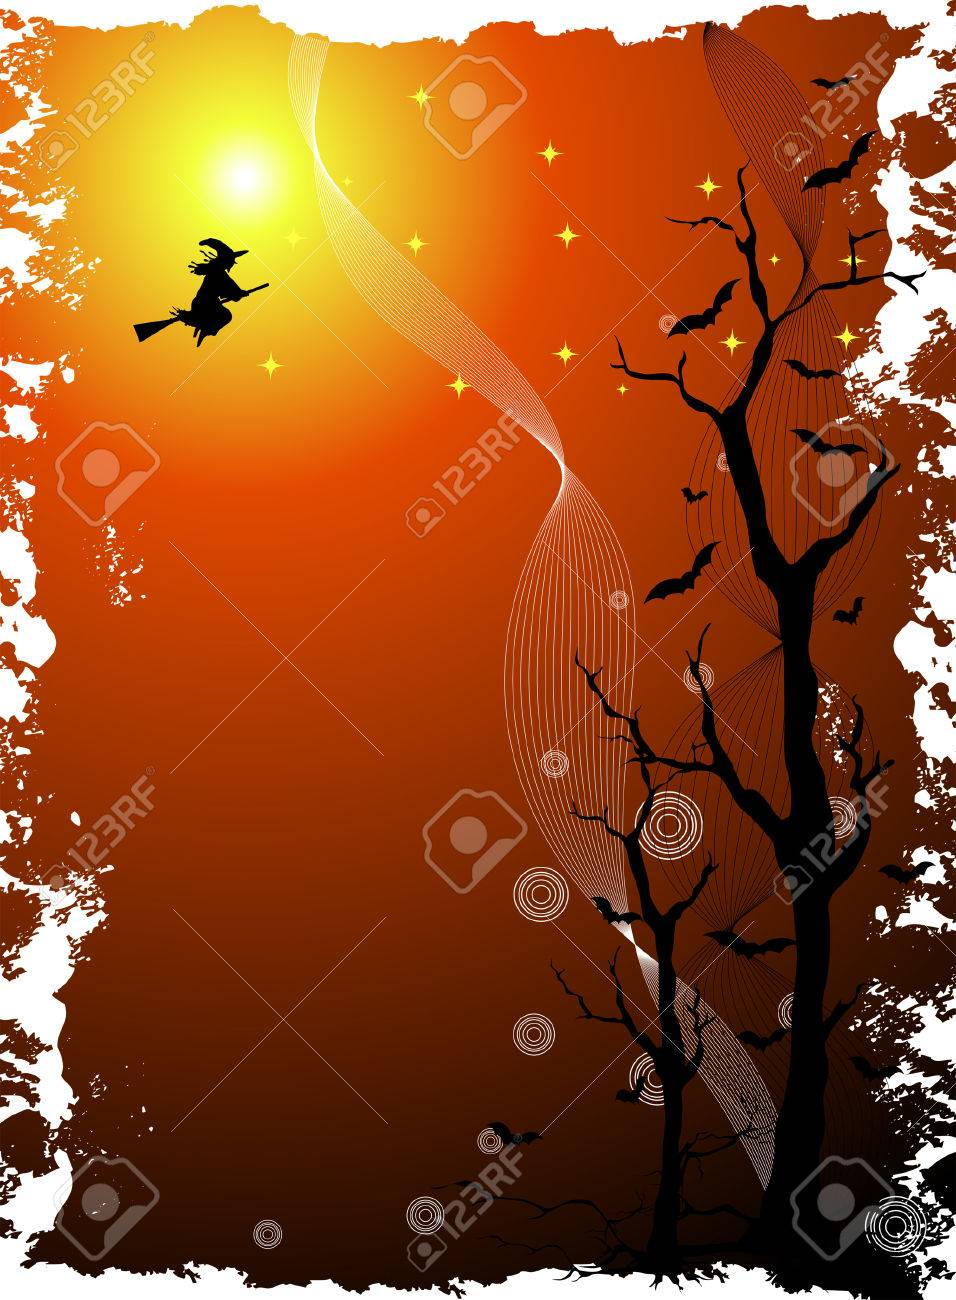 Halloween Background Stock Vector - 3647186